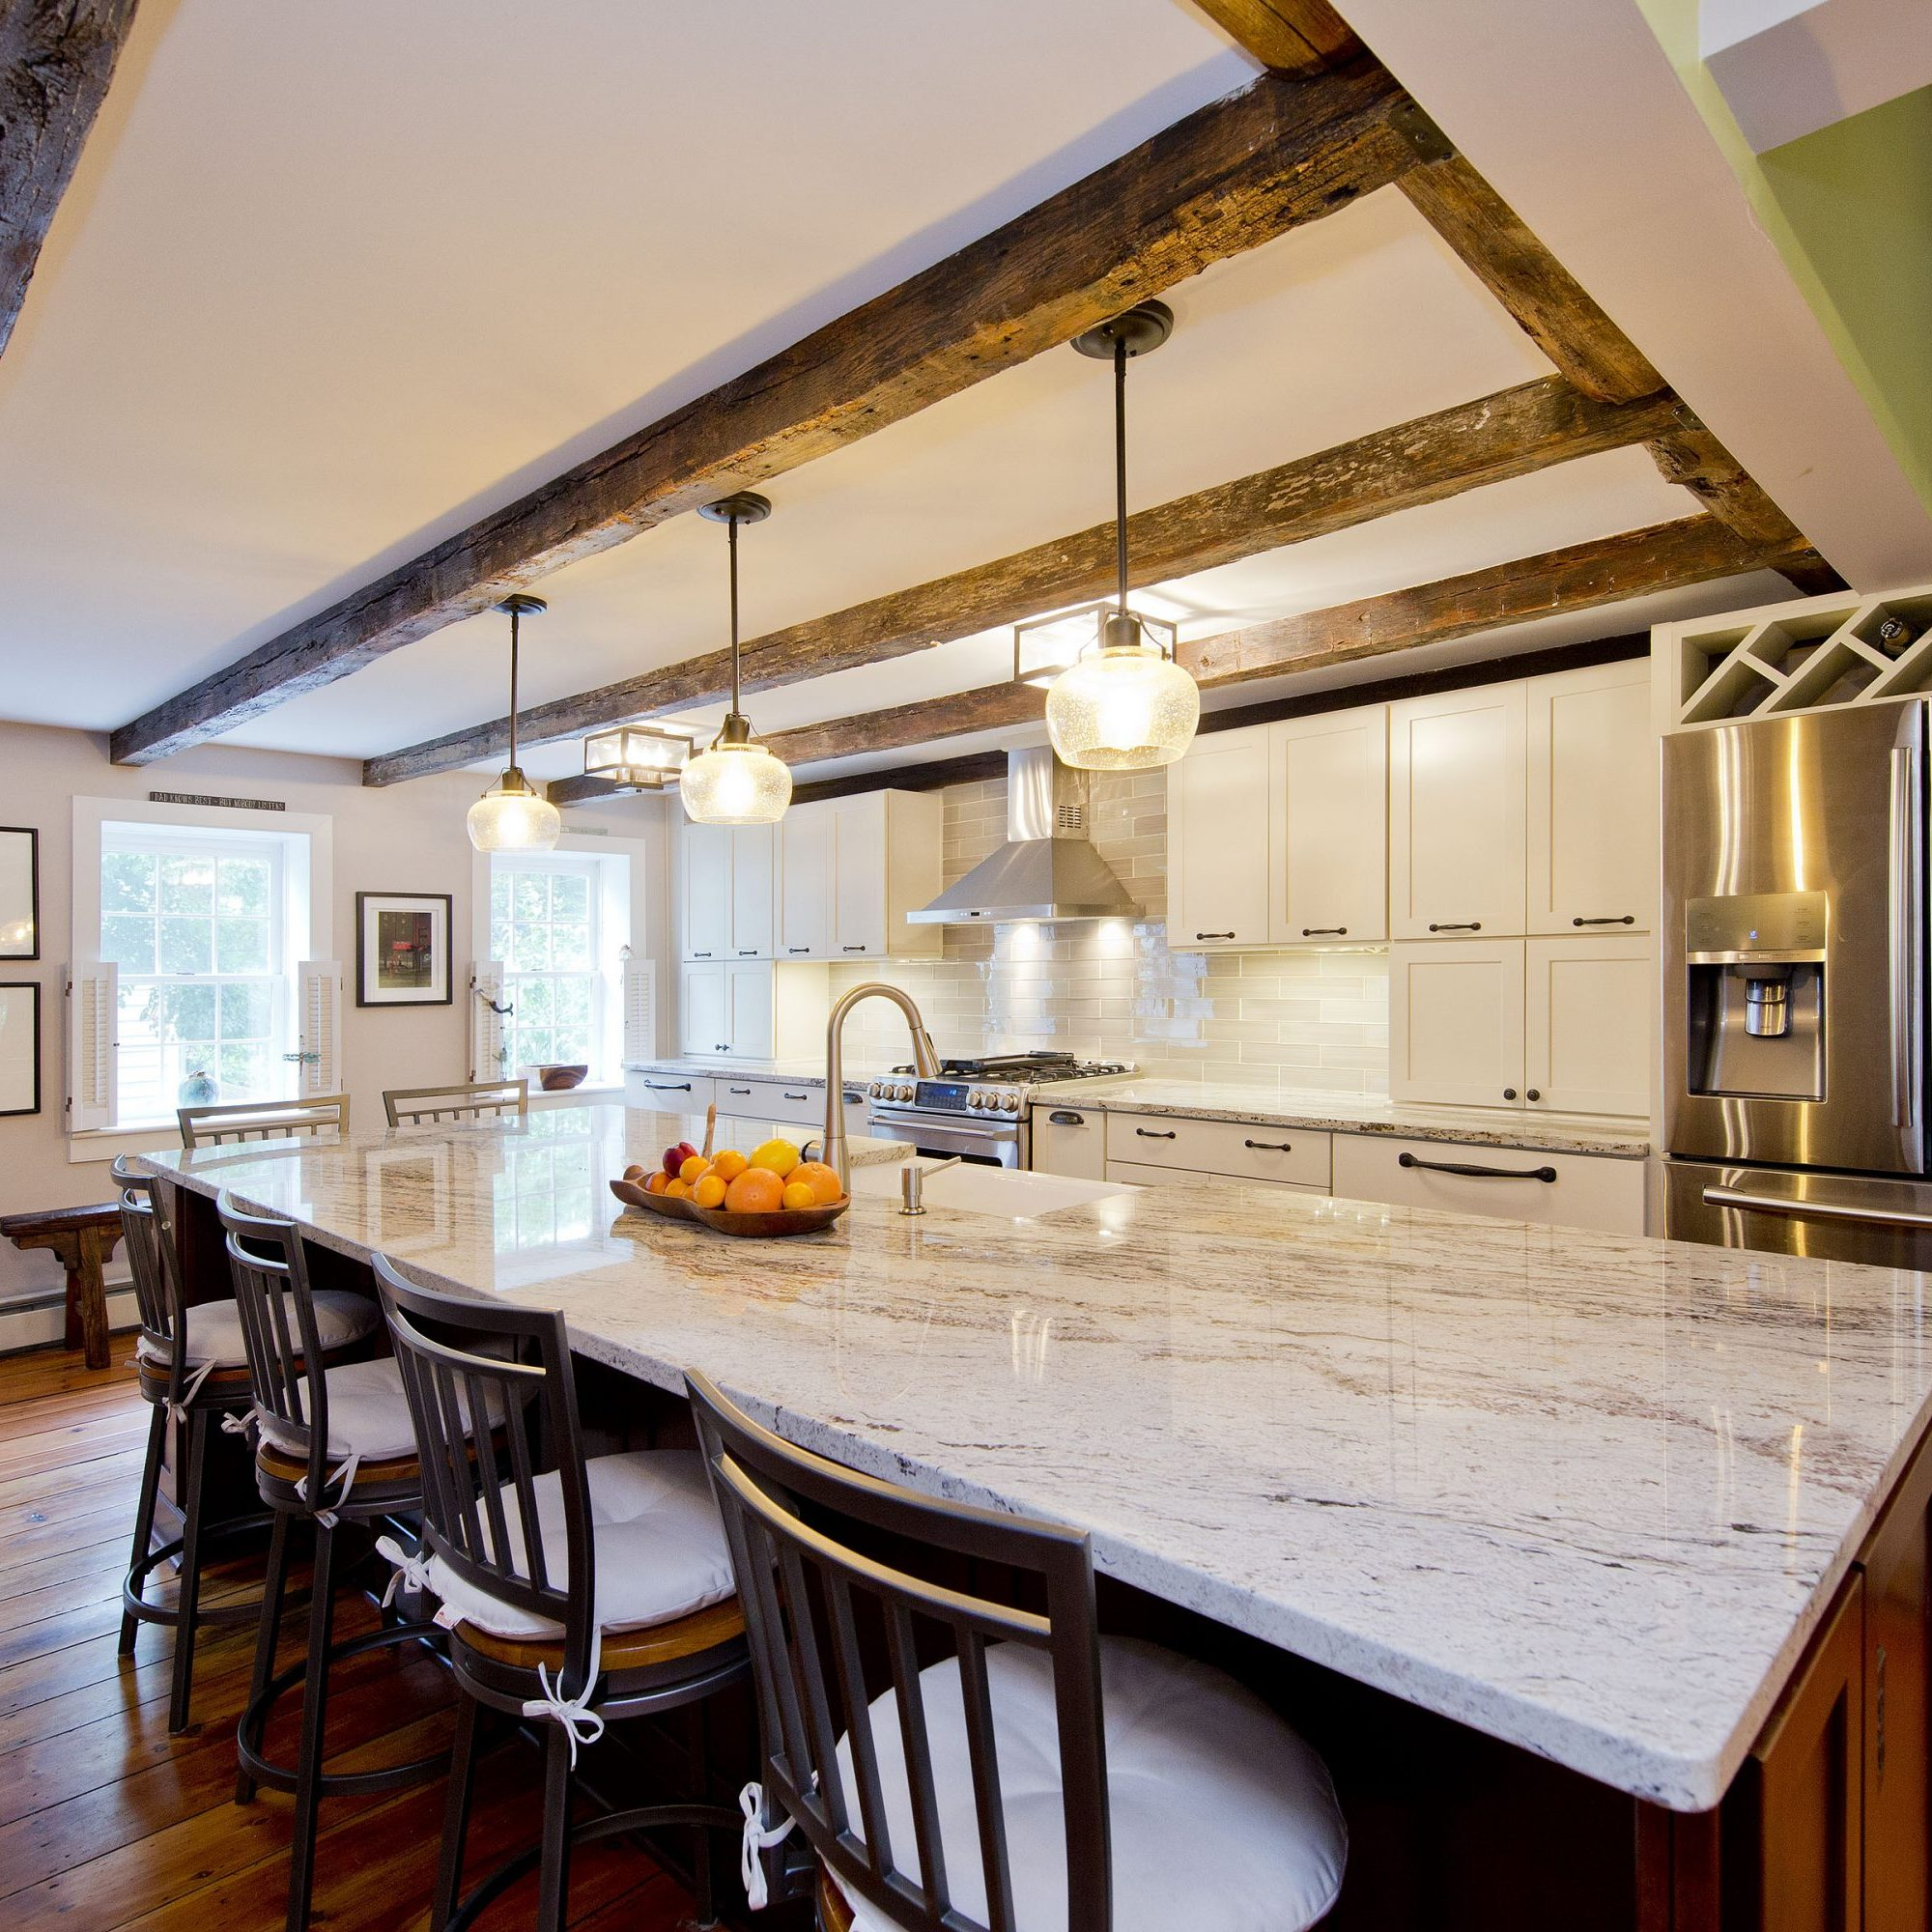 Award Winning Historic Renovation main image